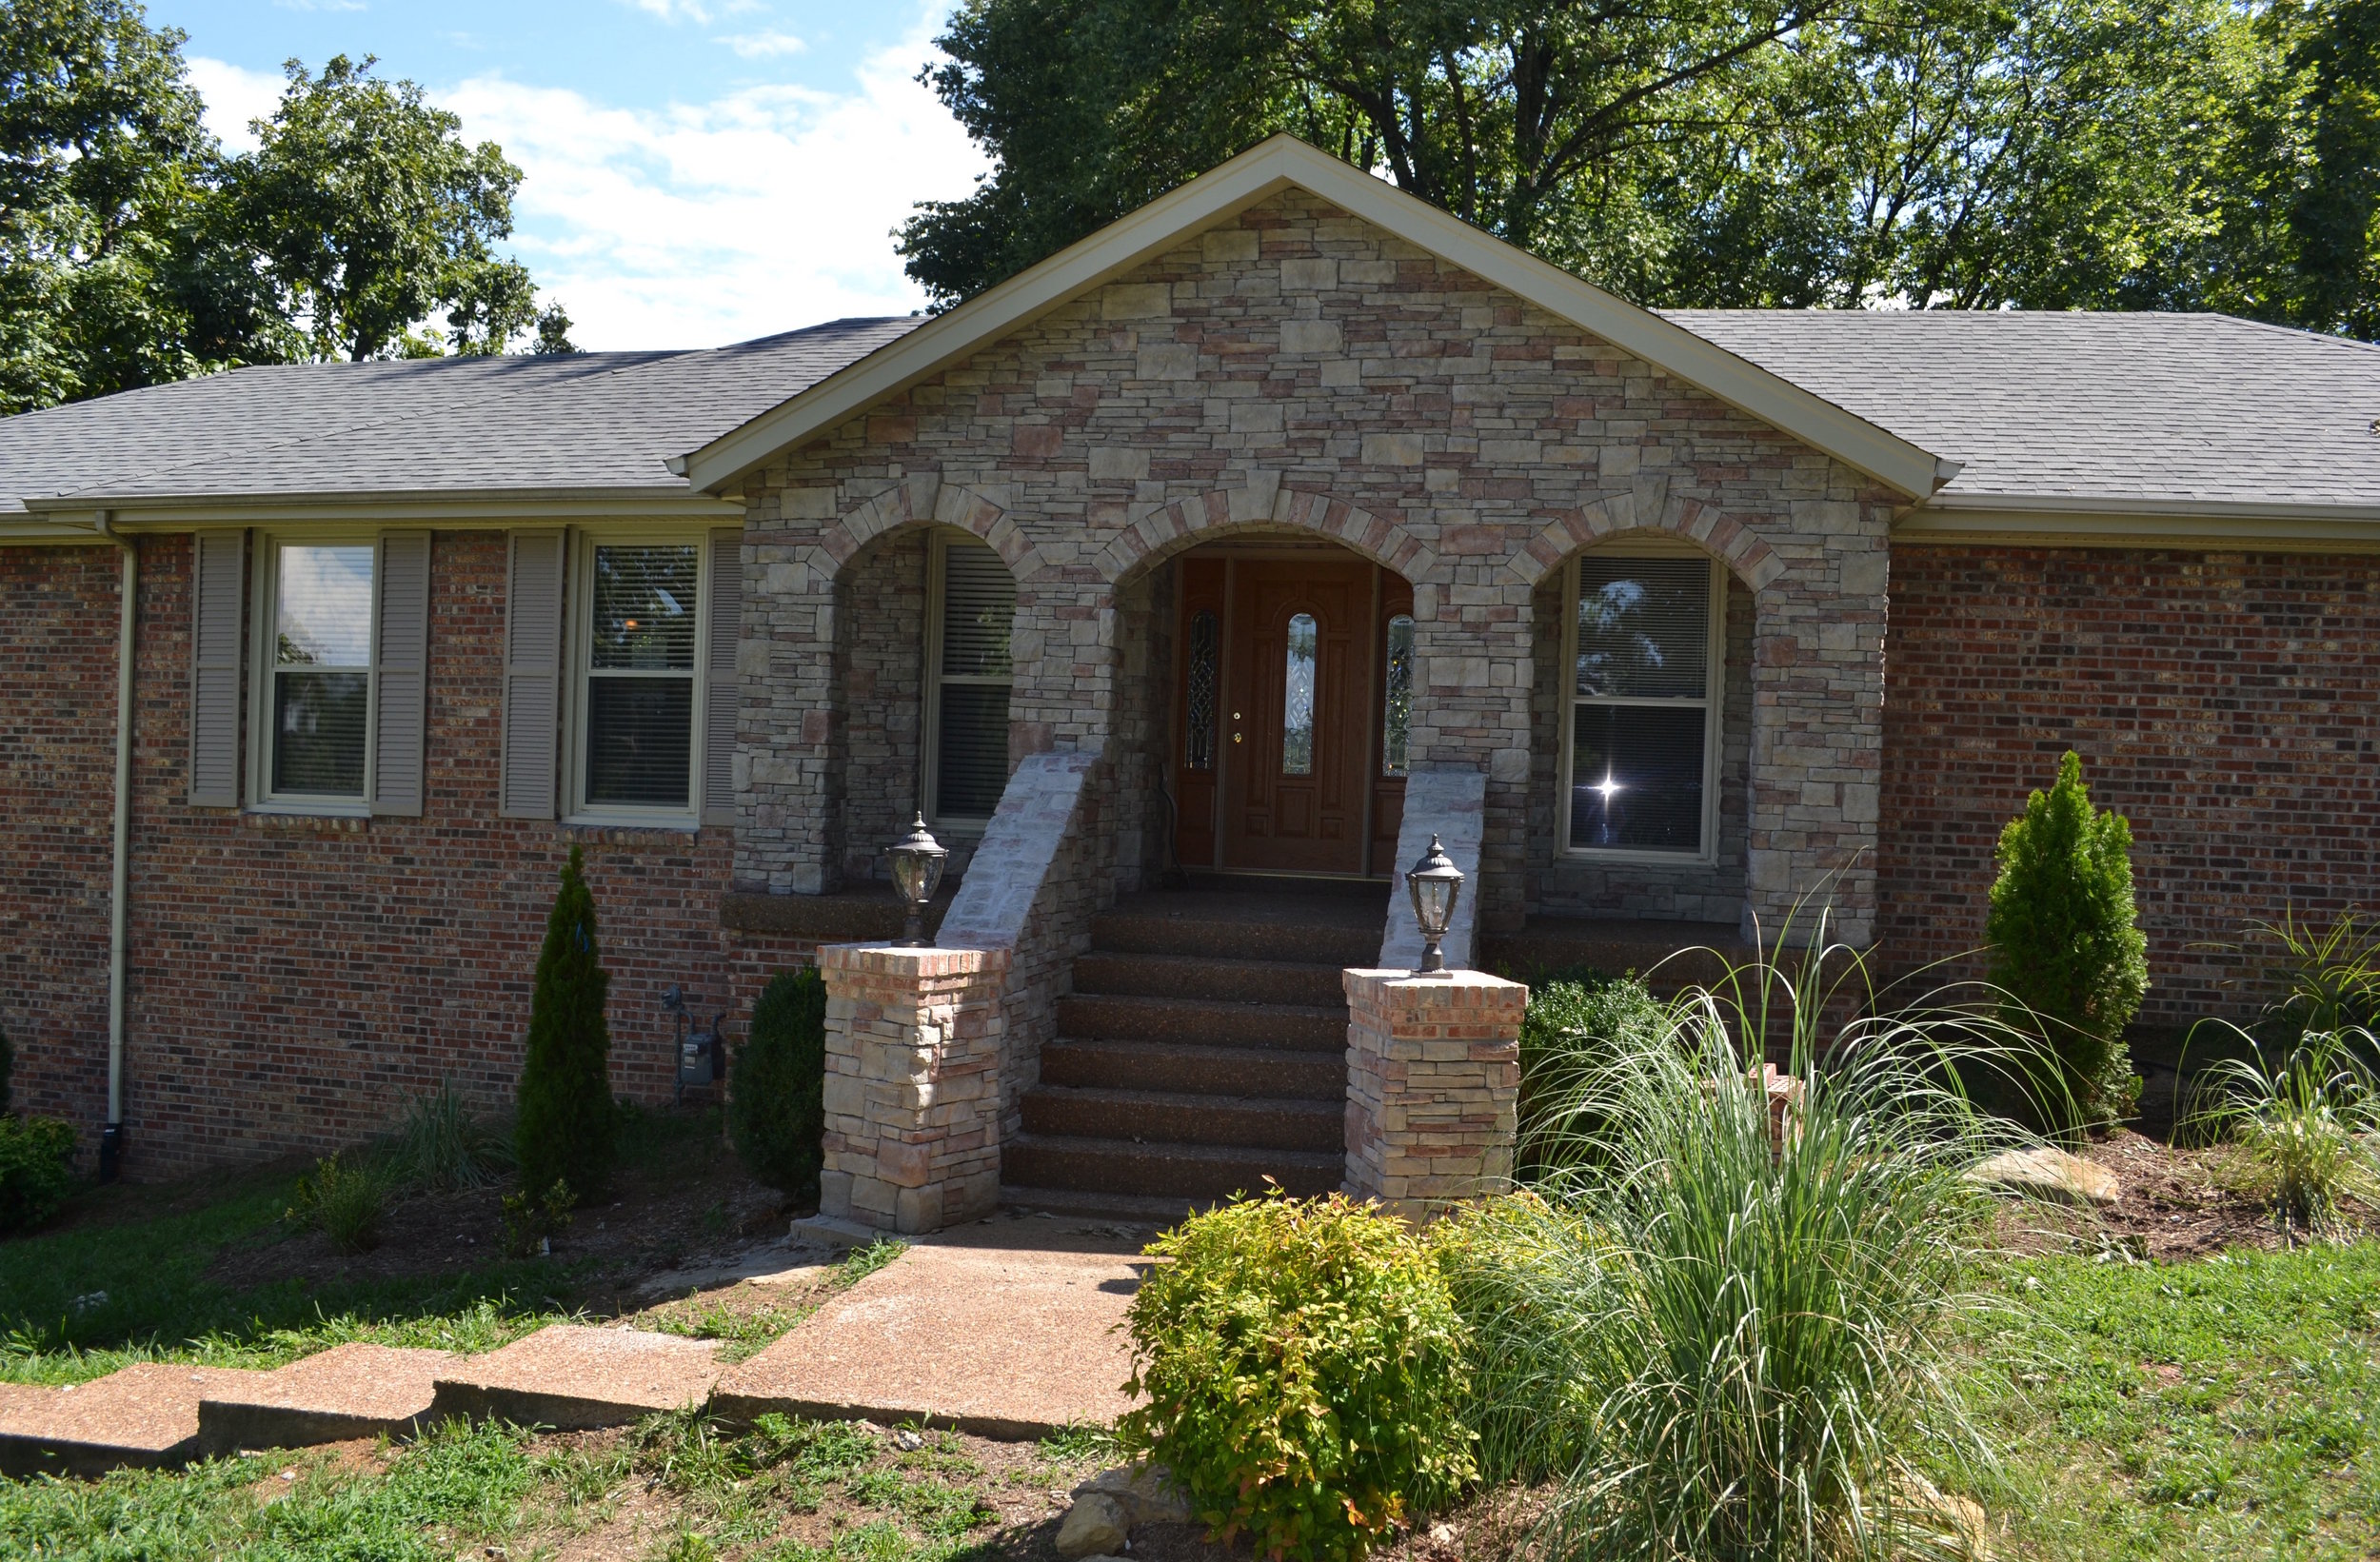 127 Caldwell Dr RENTED   HENDERSONVILLE :  Single Family Home:  3Br 3Ba + 2 Car Garage + Fireplace + Deck + Covered Porch + 3/4 Acre